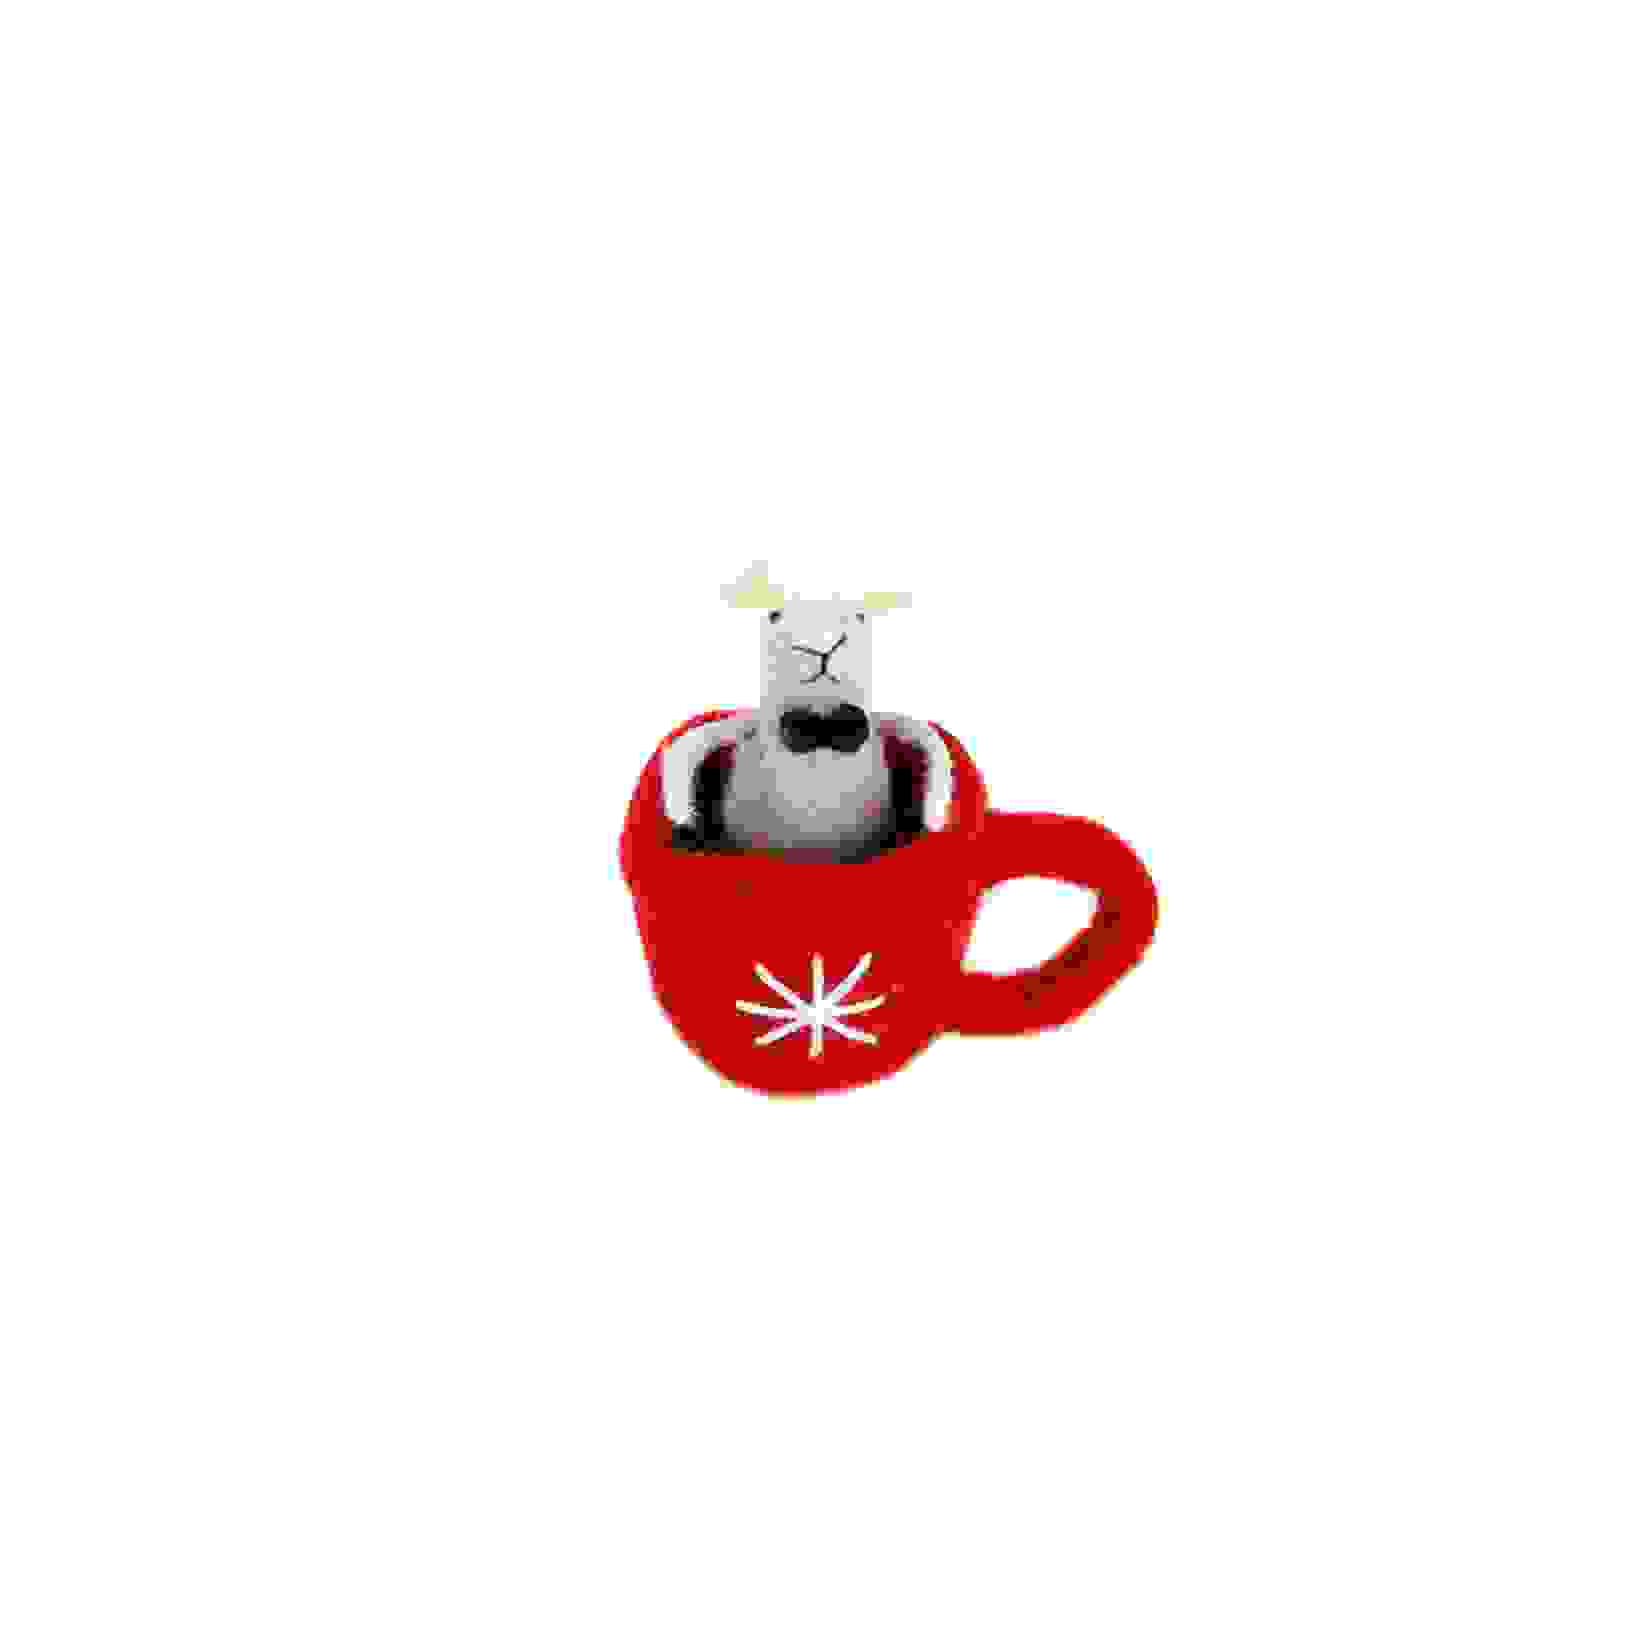 STANDING RED TEA CUP w/SMART MOUSE